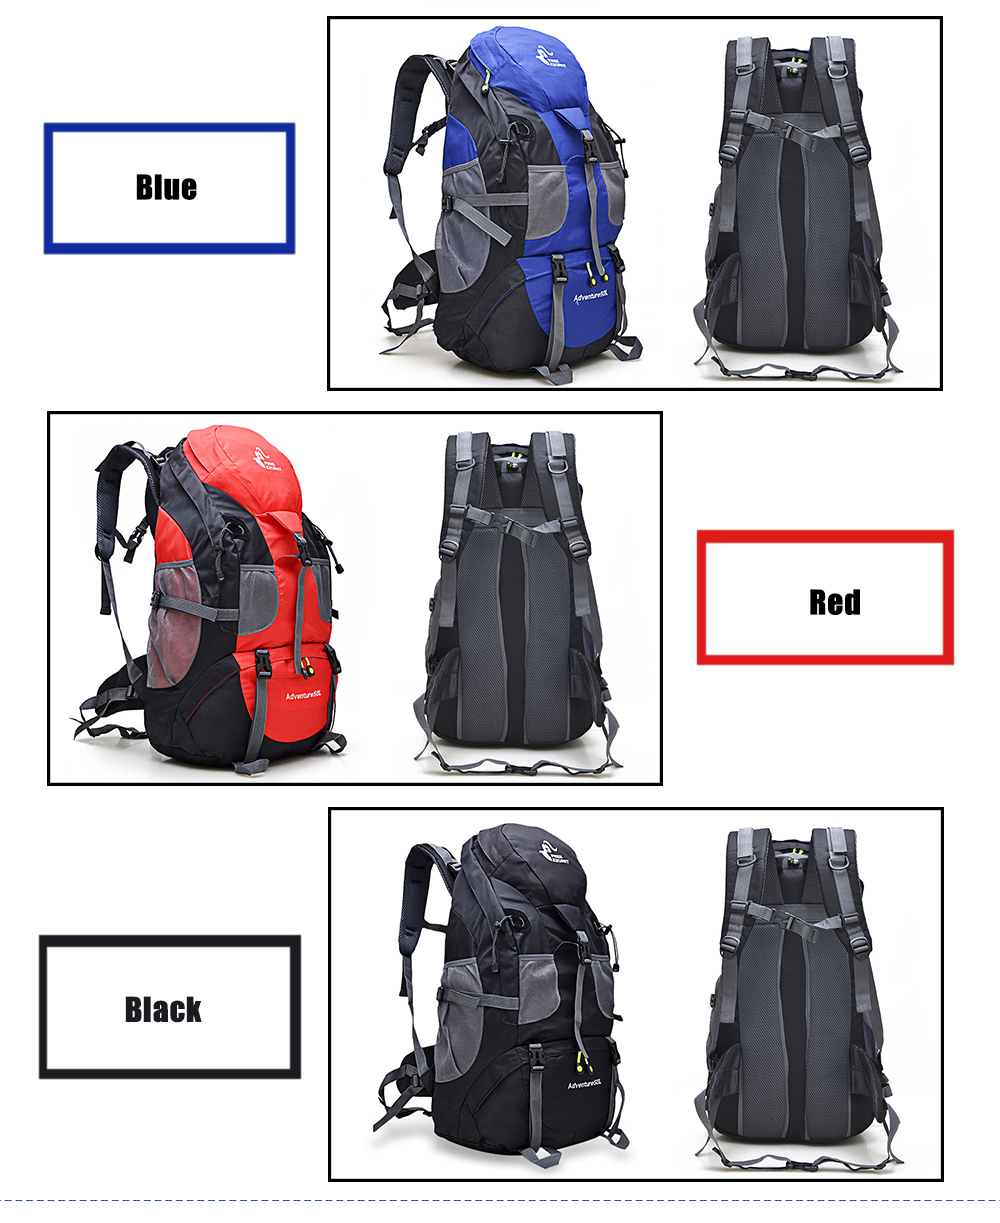 FREEKNIGHT FK0396 Waterproof Nylon Backpack for Outdoor Climbing Cycling Hiking